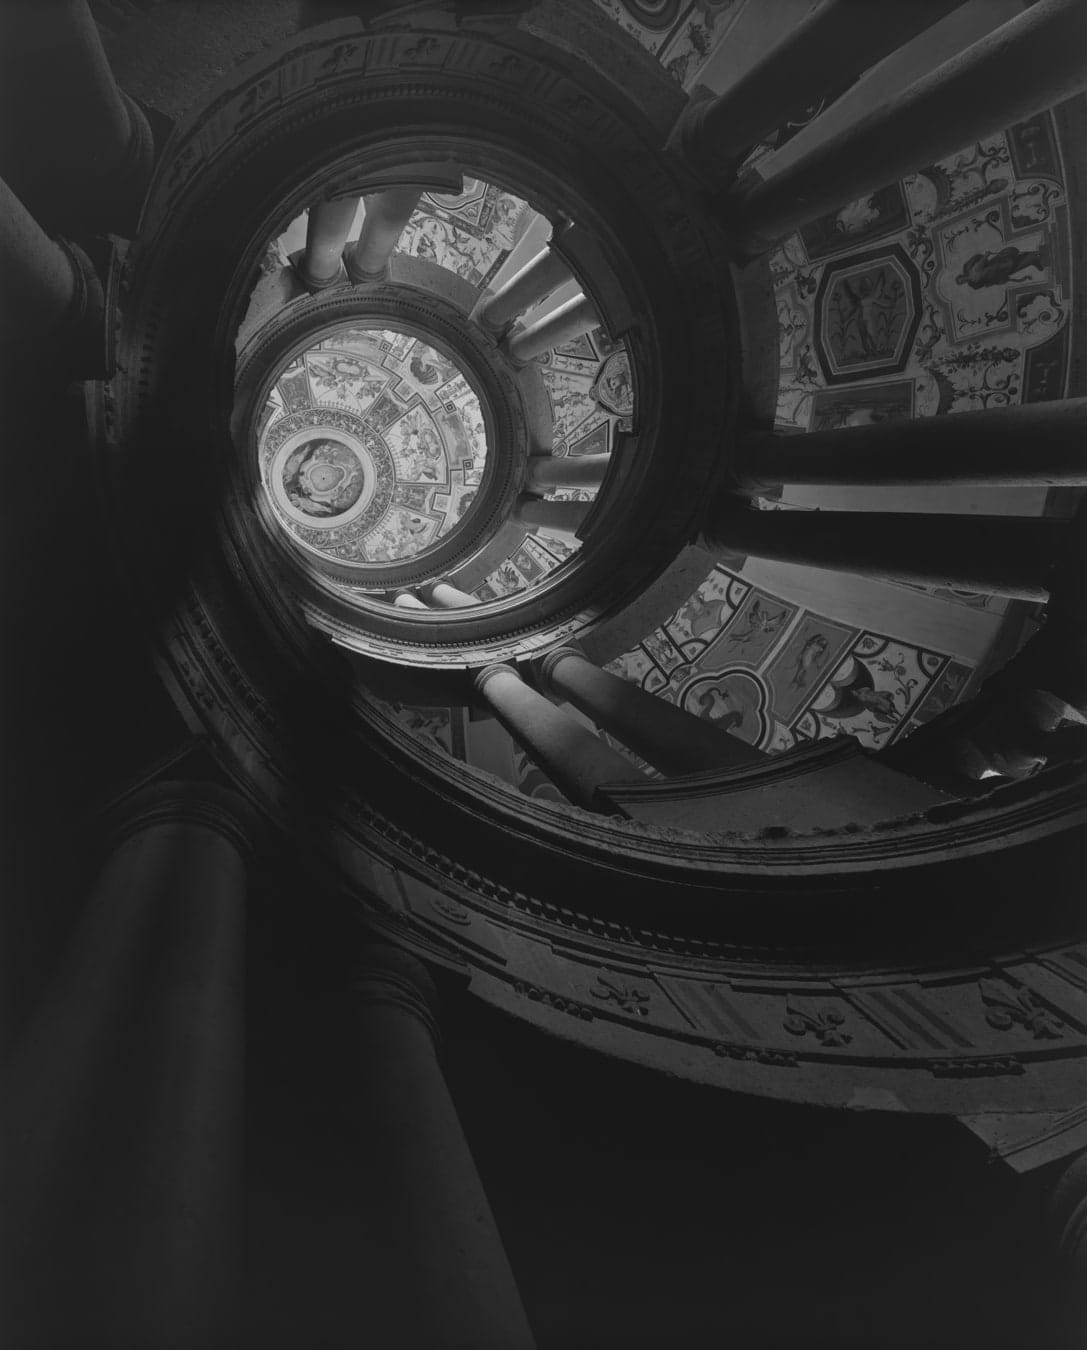 Black and white photograph of an upward view of a circular architectural spire with columns and fresco paintings in the grotesque style.